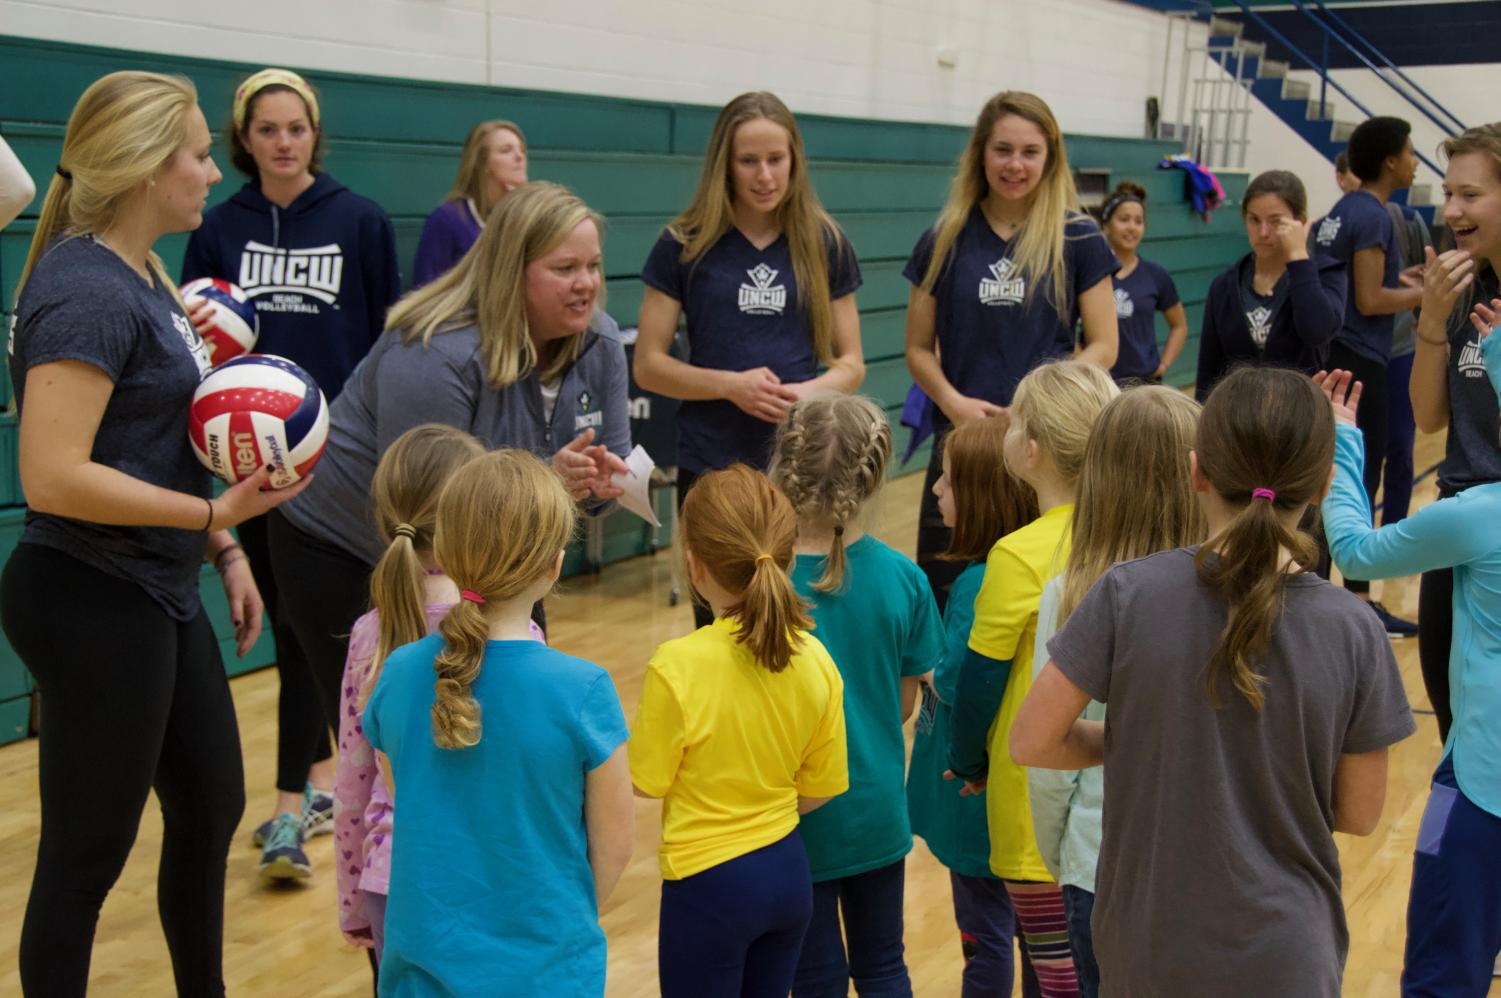 Volleyball+coach+Amy+Bambenek+speaks+to+a+group+of+young+ladies